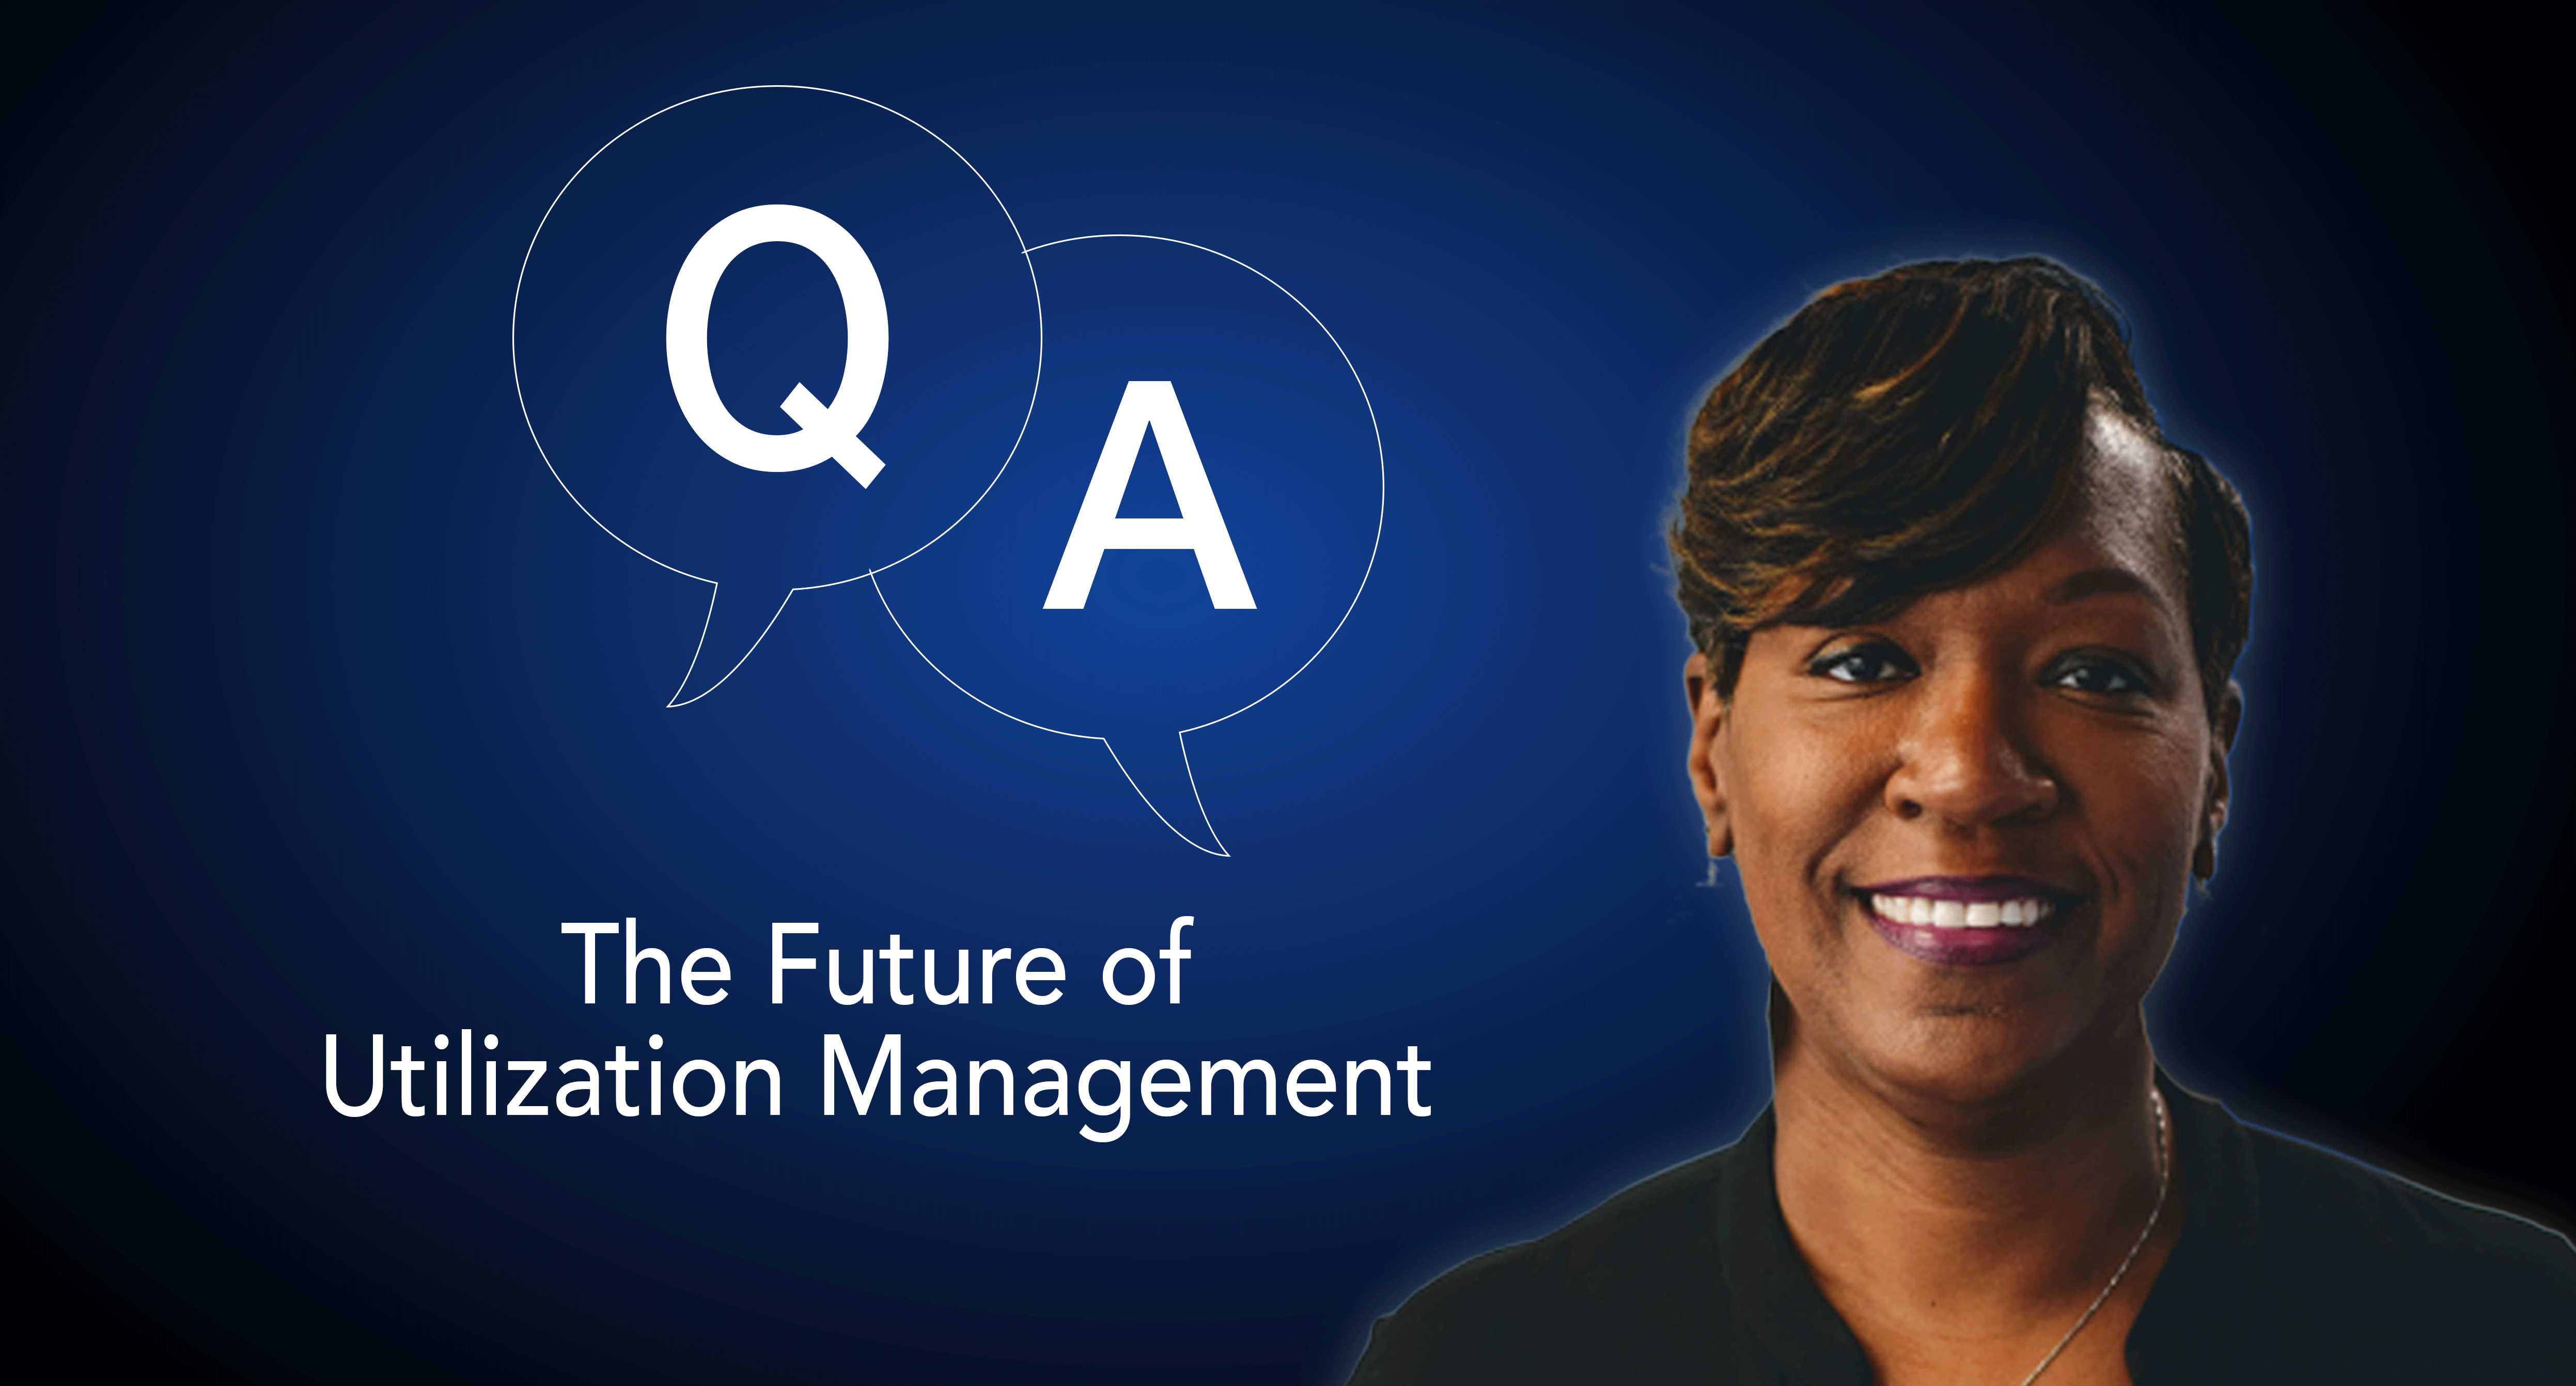 The Future of Utilization Management – Q&A with Michelle Wyatt